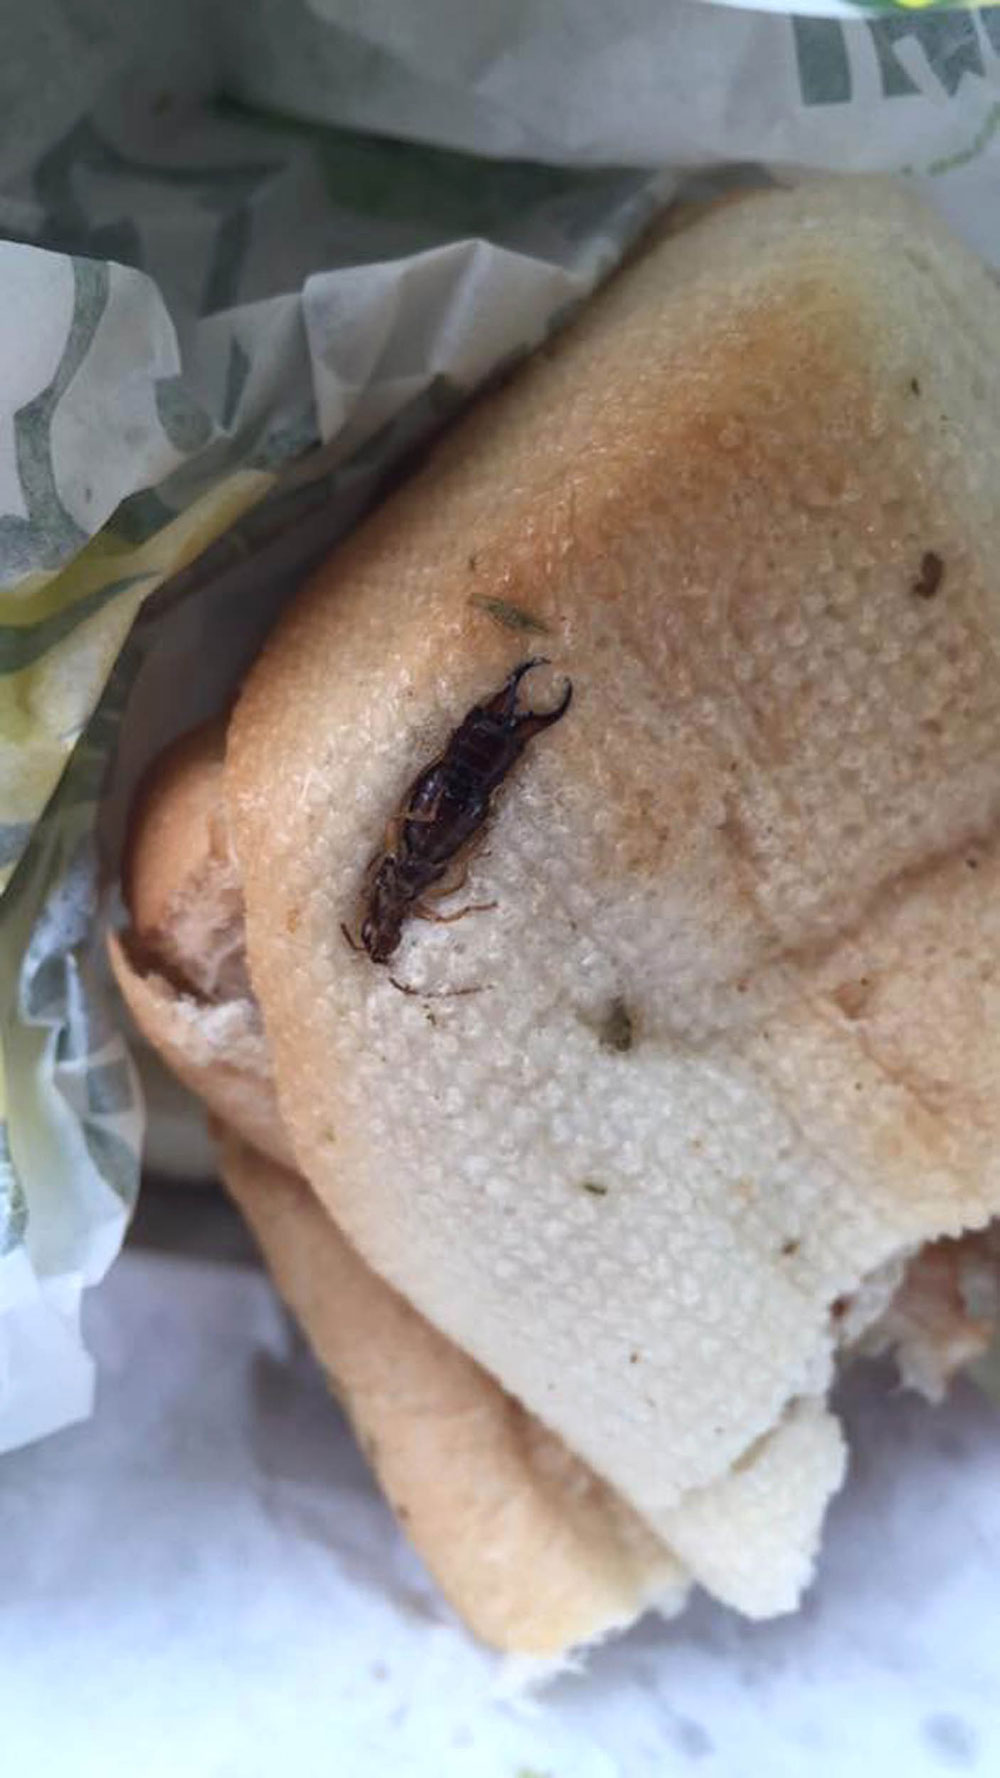 The giant earwig was embedded in the sandwich